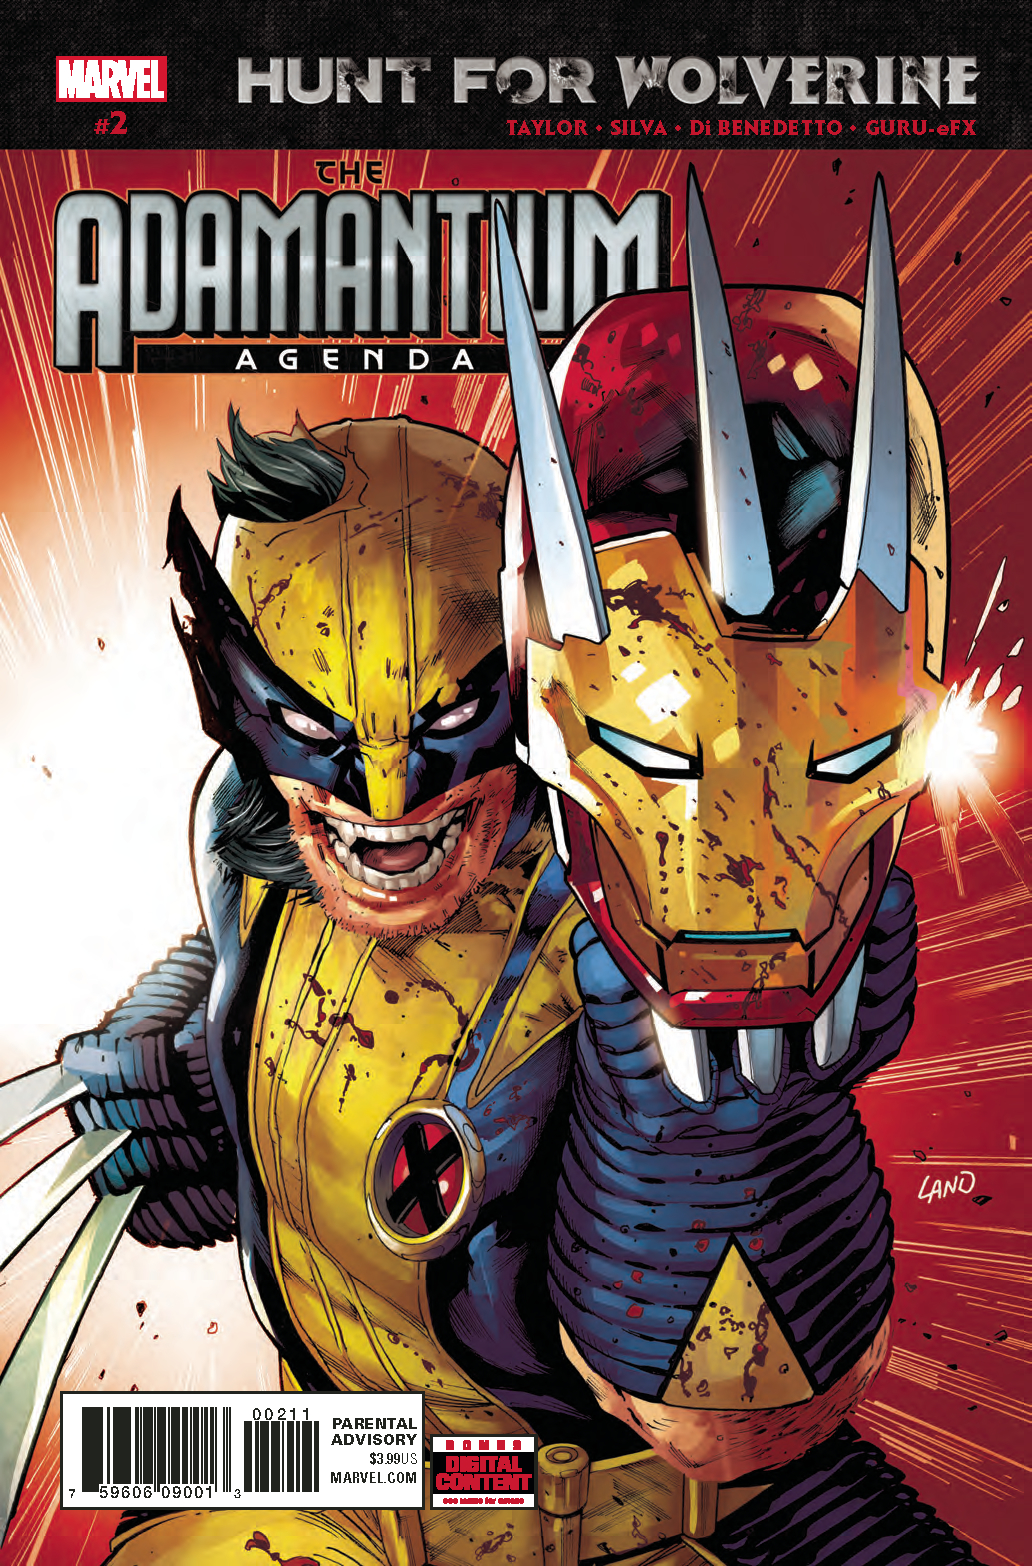 HUNT FOR WOLVERINE ADAMANTIUM AGENDA #2 (OF 4)